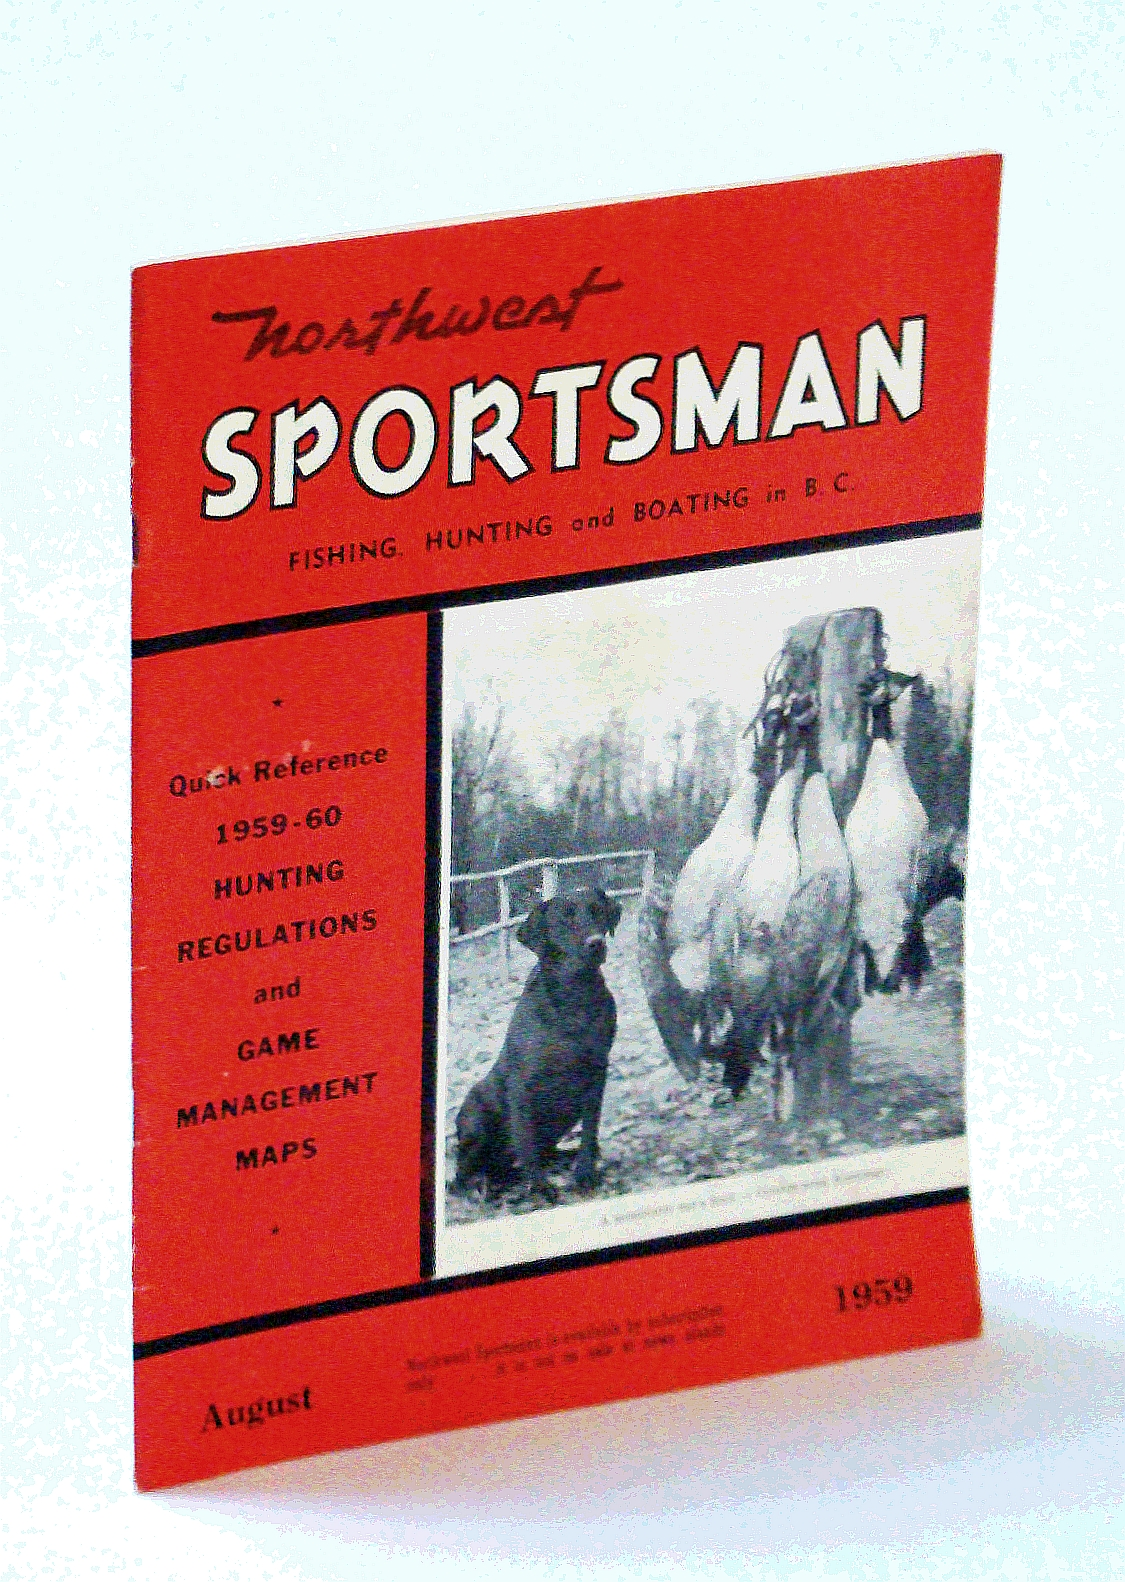 Image for Northwest Sportsman Magazine - Fishing, Hunting and Boating in B.C., August [Aug.] 1959 - 1959-60 Hunting Regulations and Game Management Maps